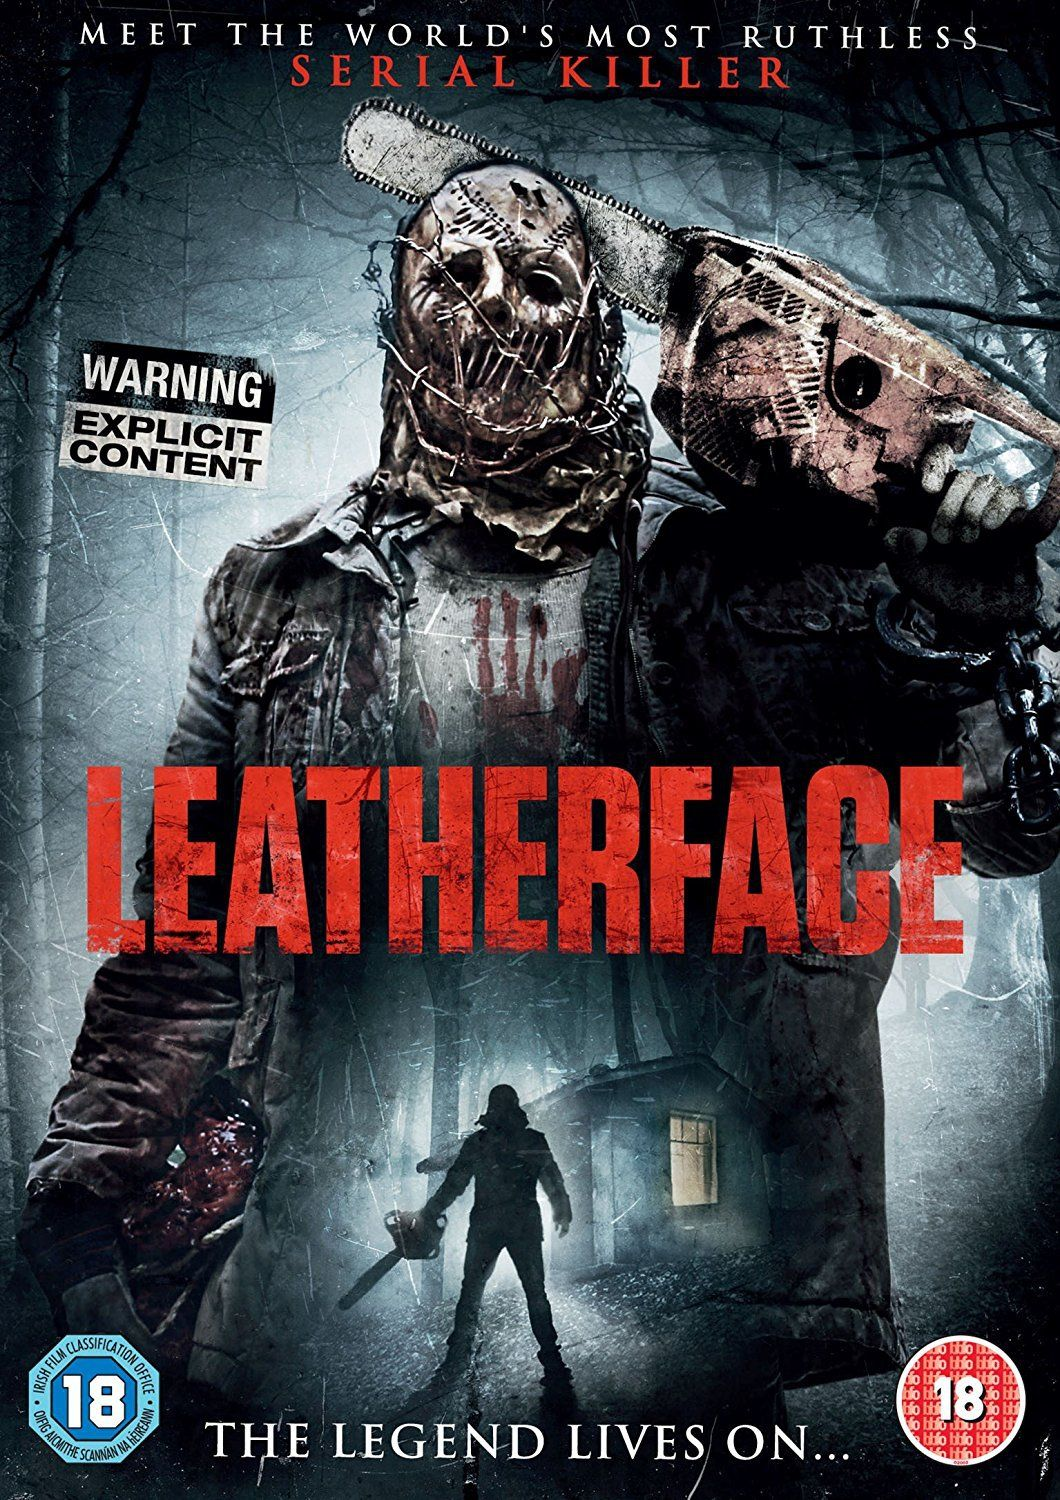 Leather Face 2017 Horror Movies 2017 Horror Movies Horror Movie Posters